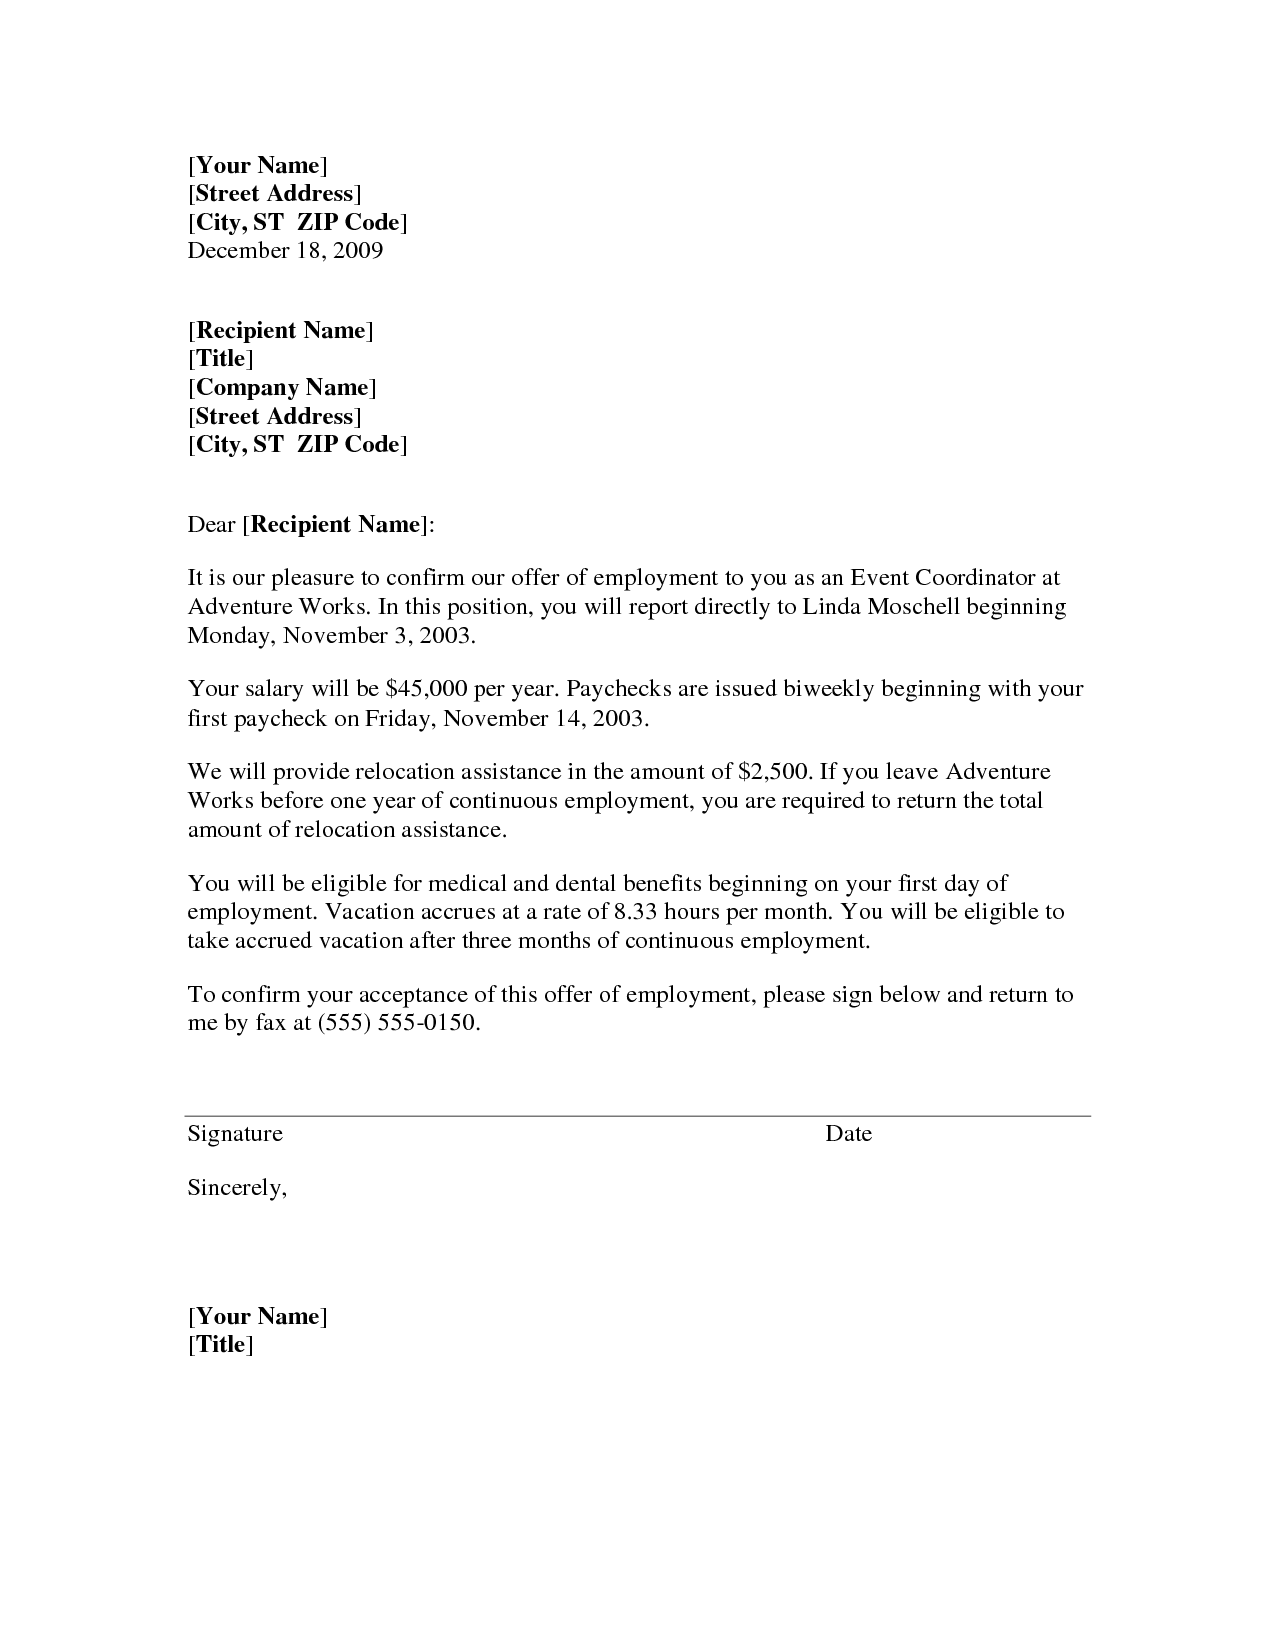 Best Photos Of Irs Cover Letter Sle Sle Irs Sports Pinterest